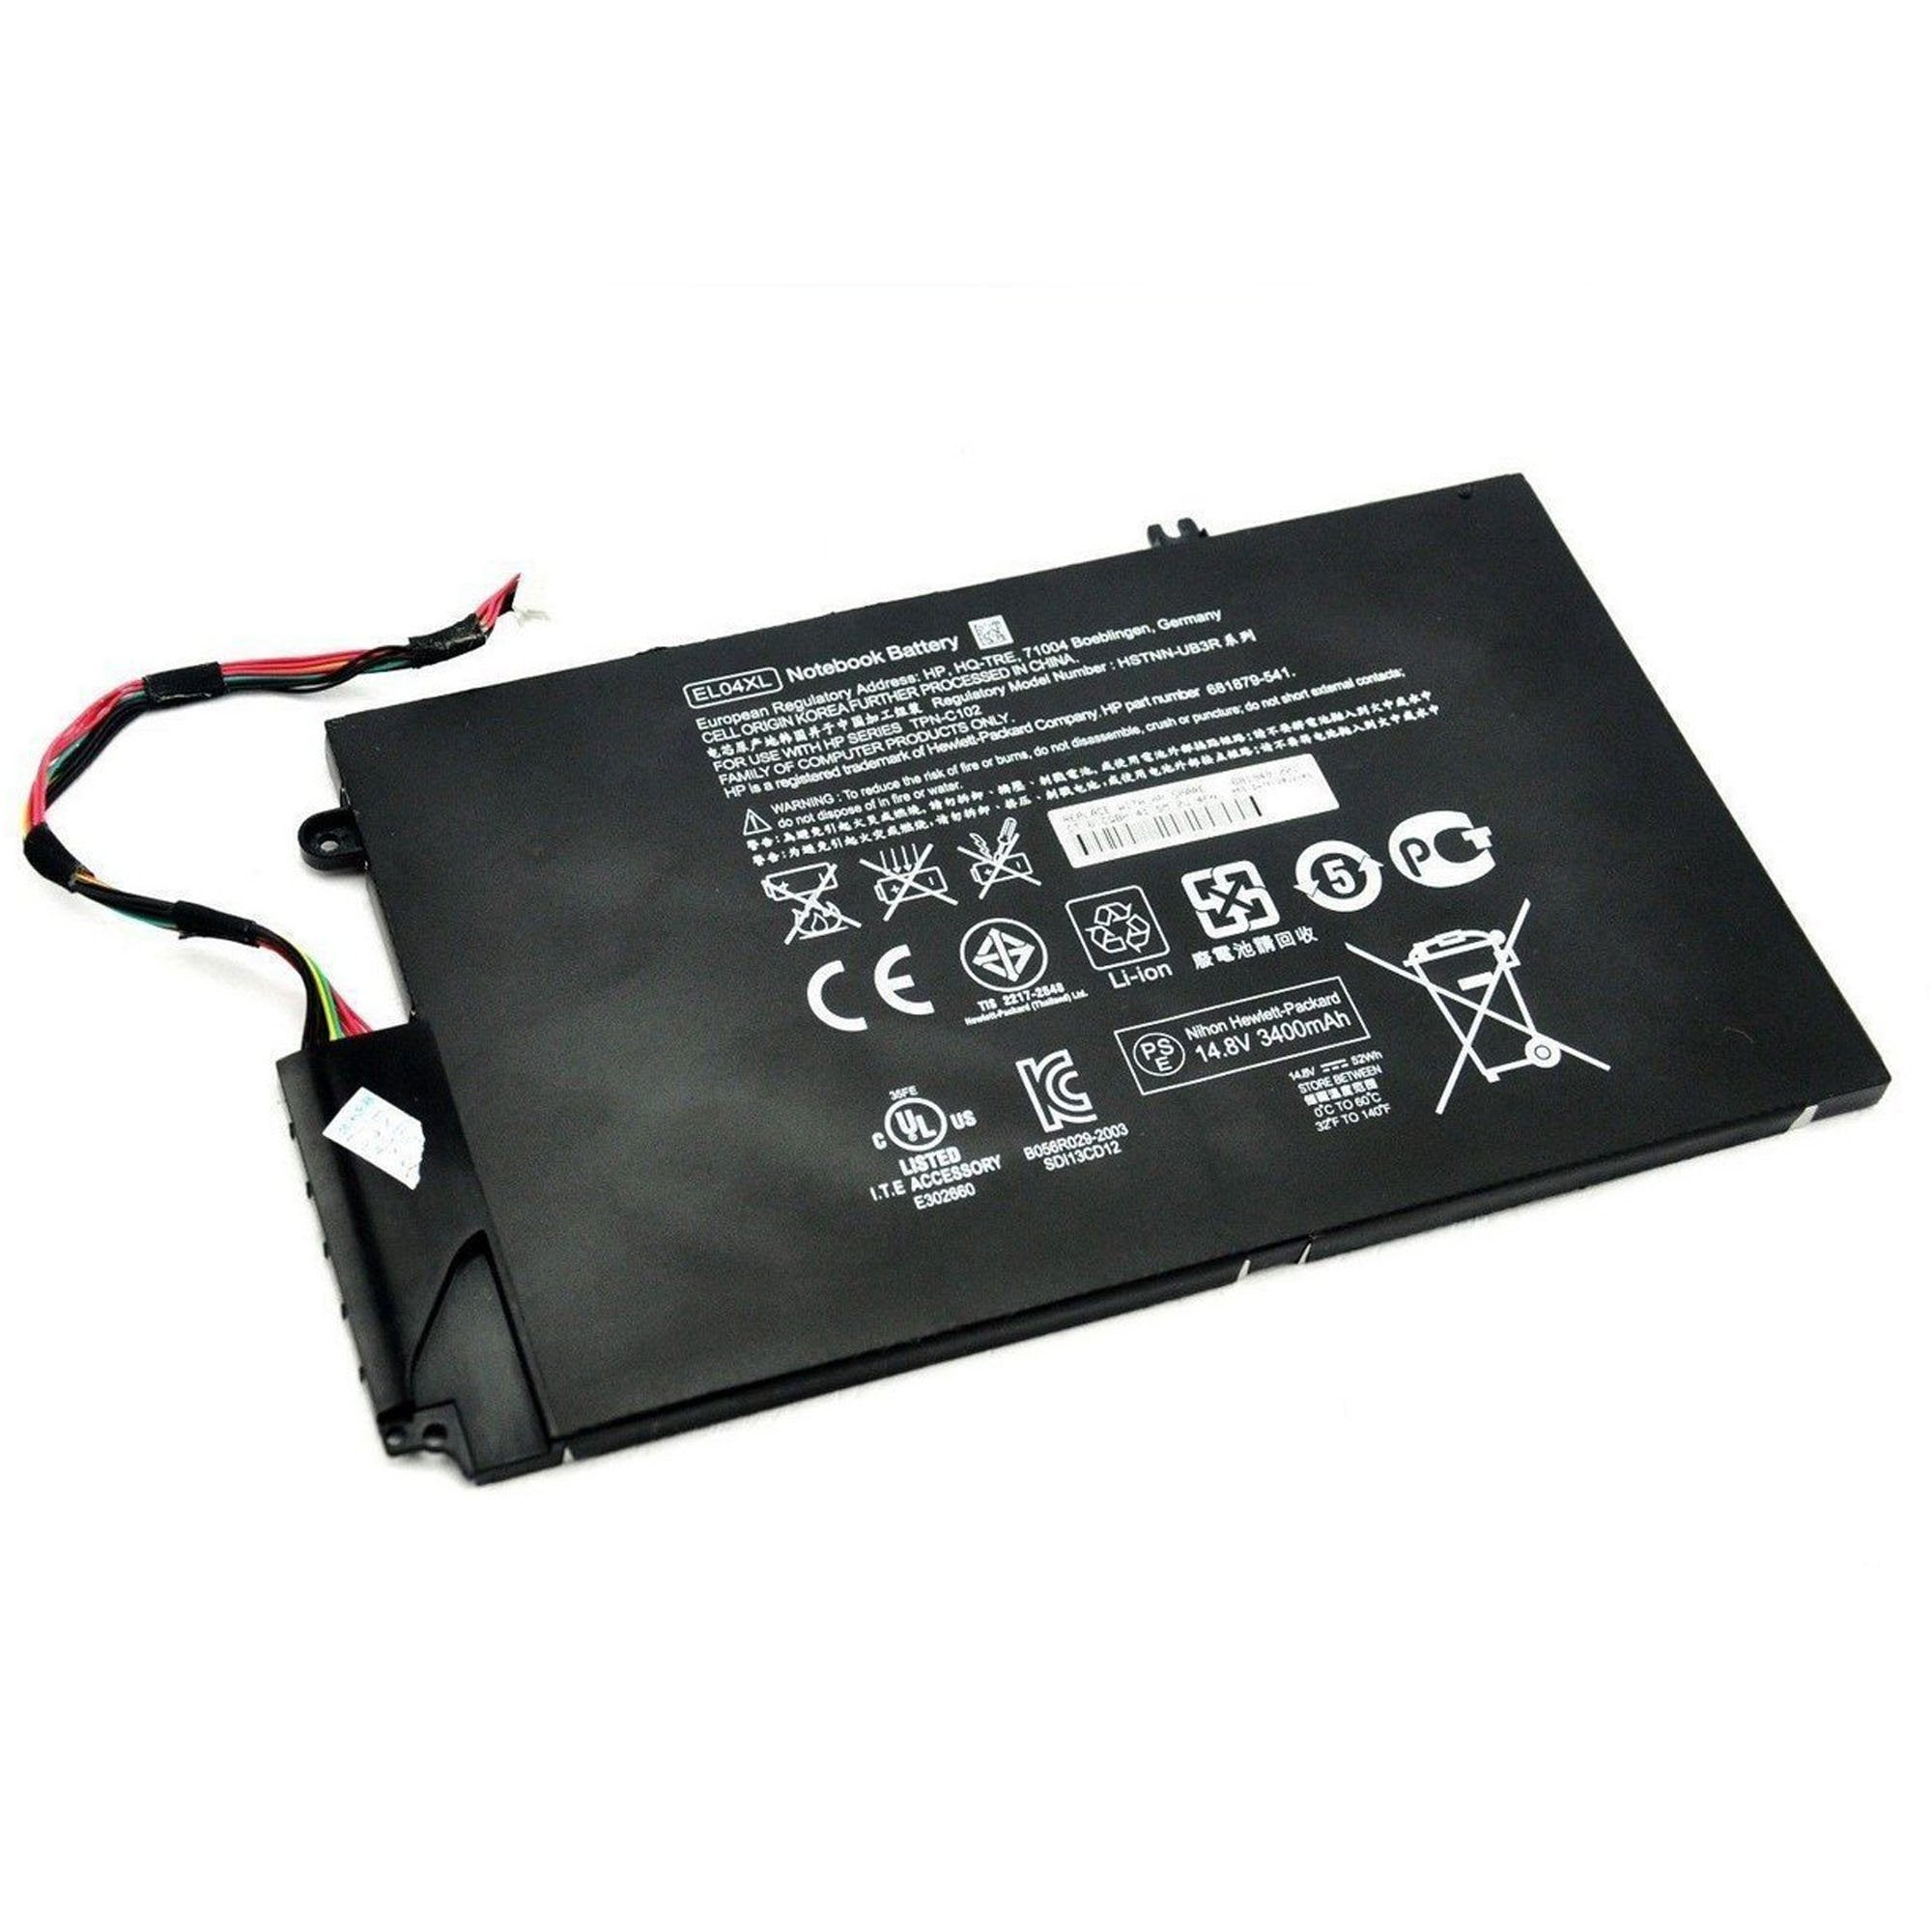 HP Envy Ultrabook 4-1150br 3500mAh 4 Cell Battery